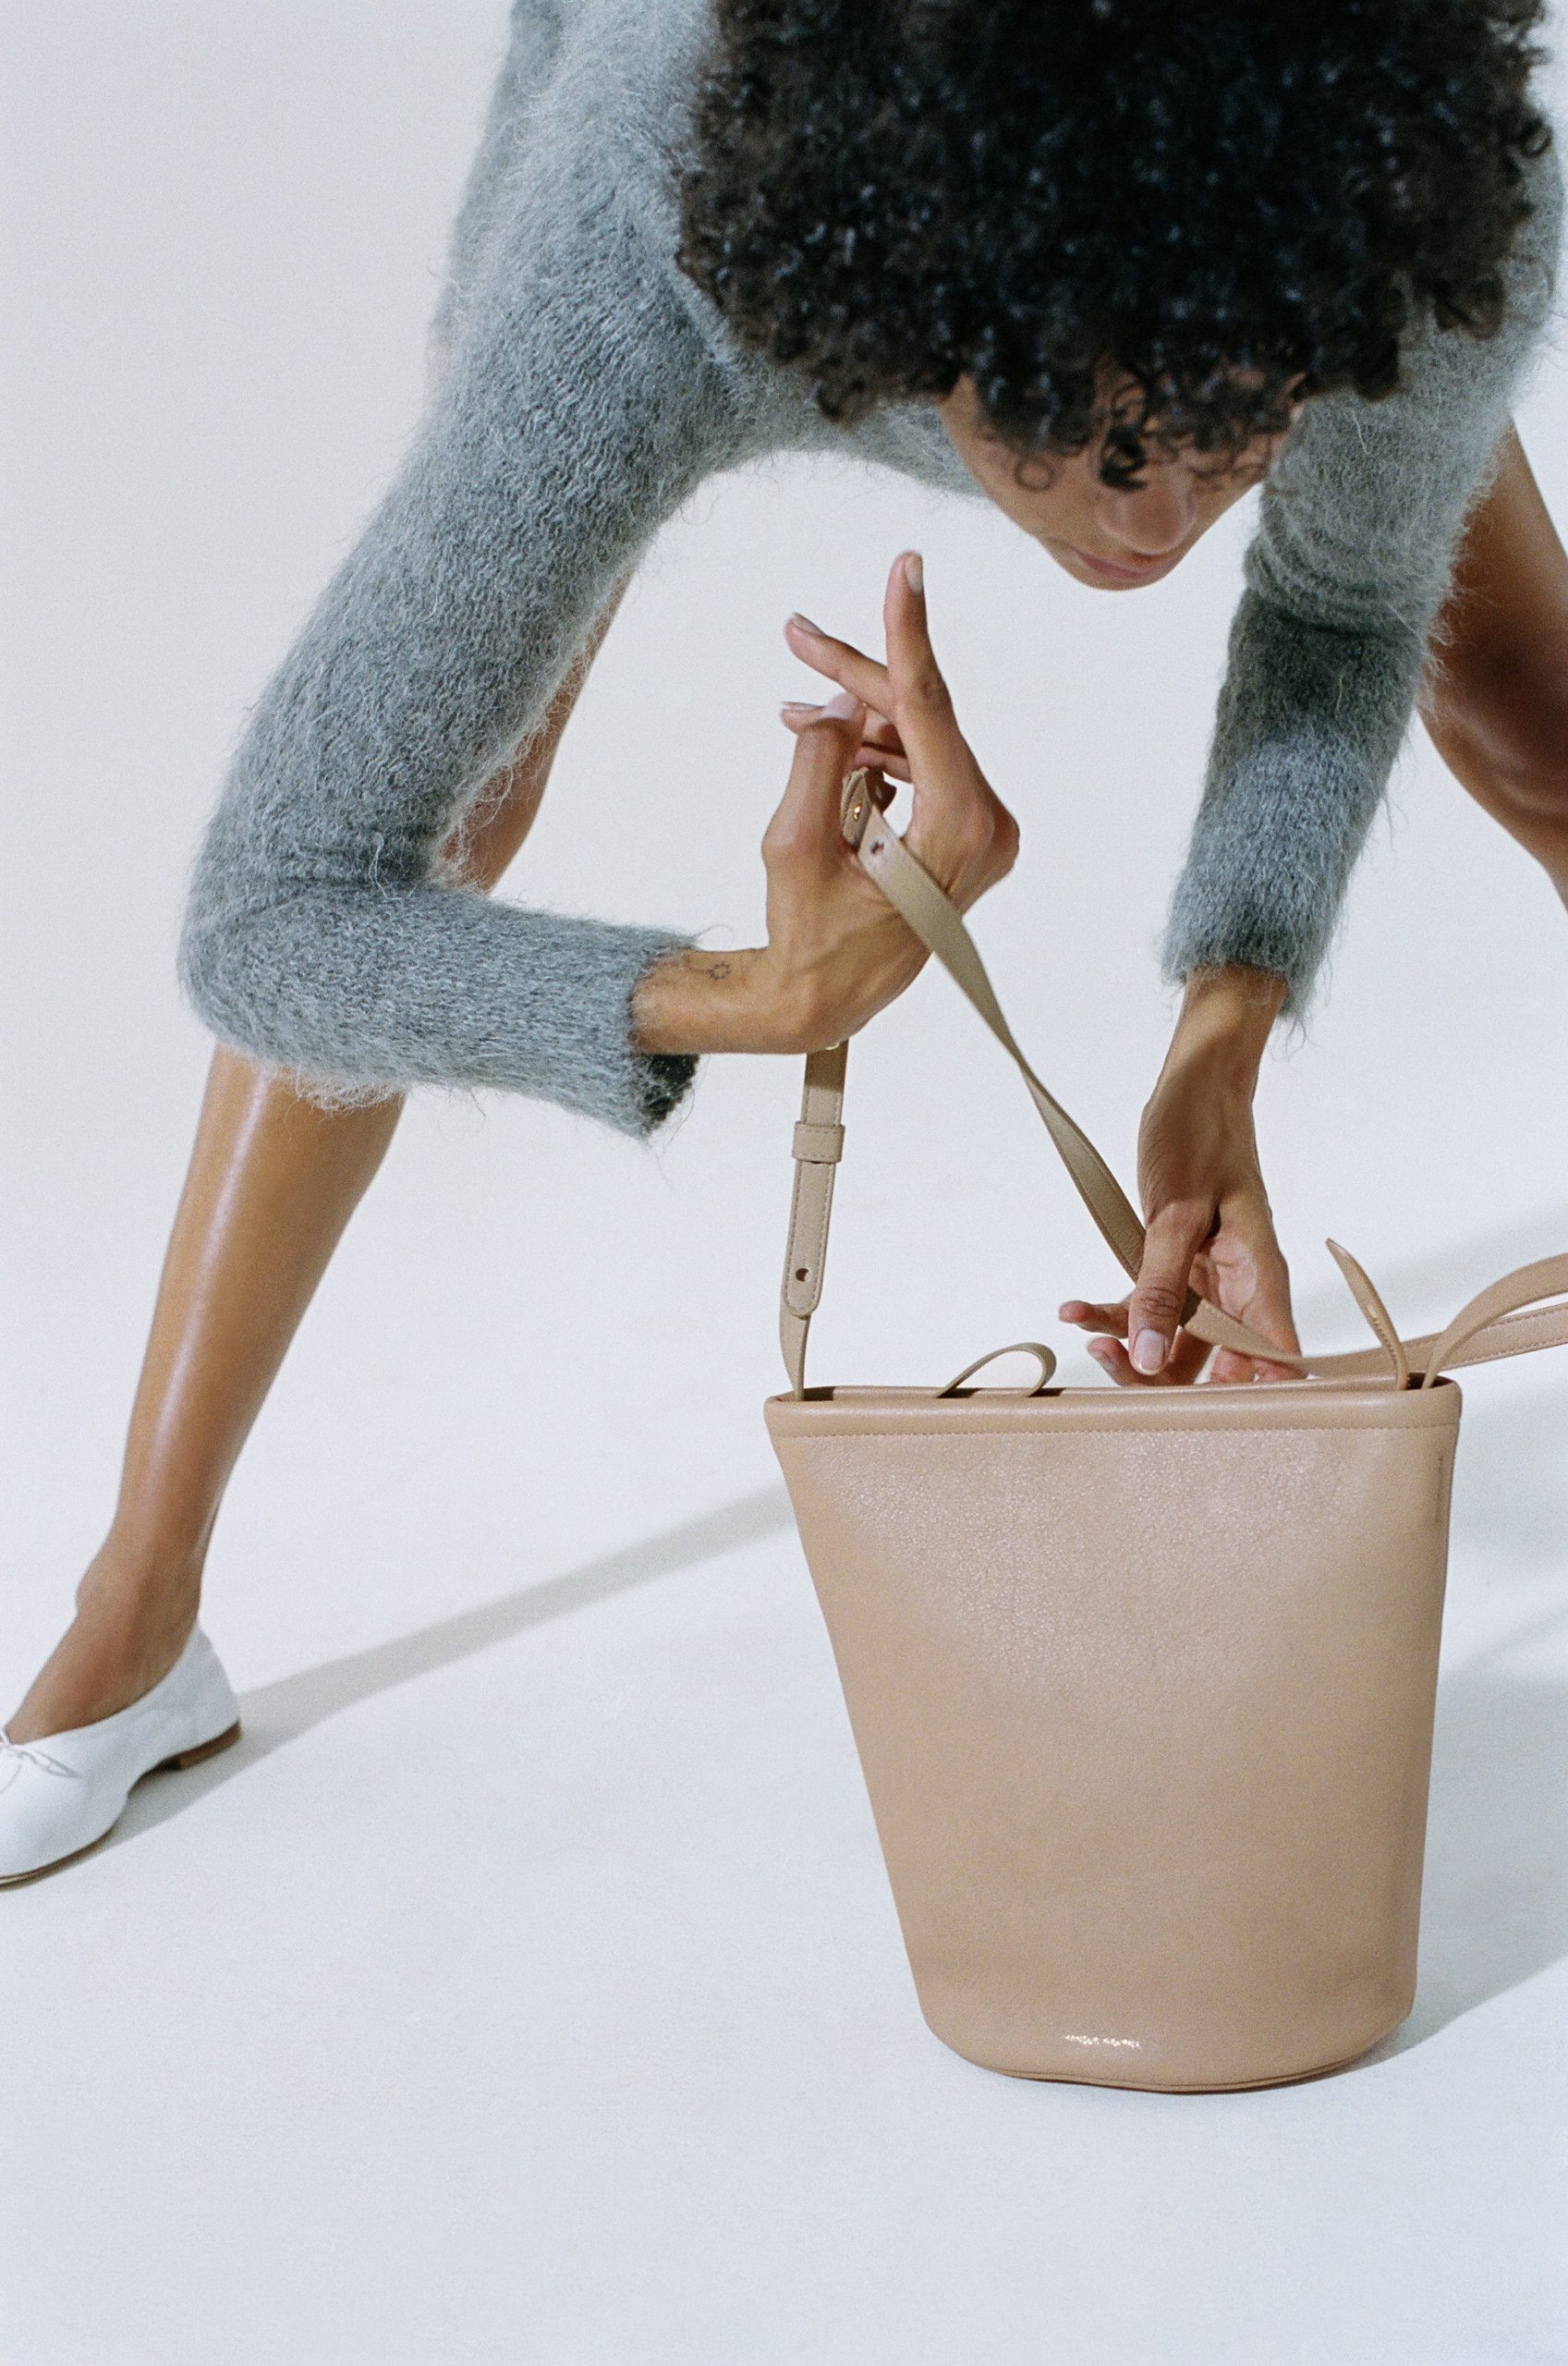 Mansur Gavriel Holiday 2020 Ad Campaign Film & Photos